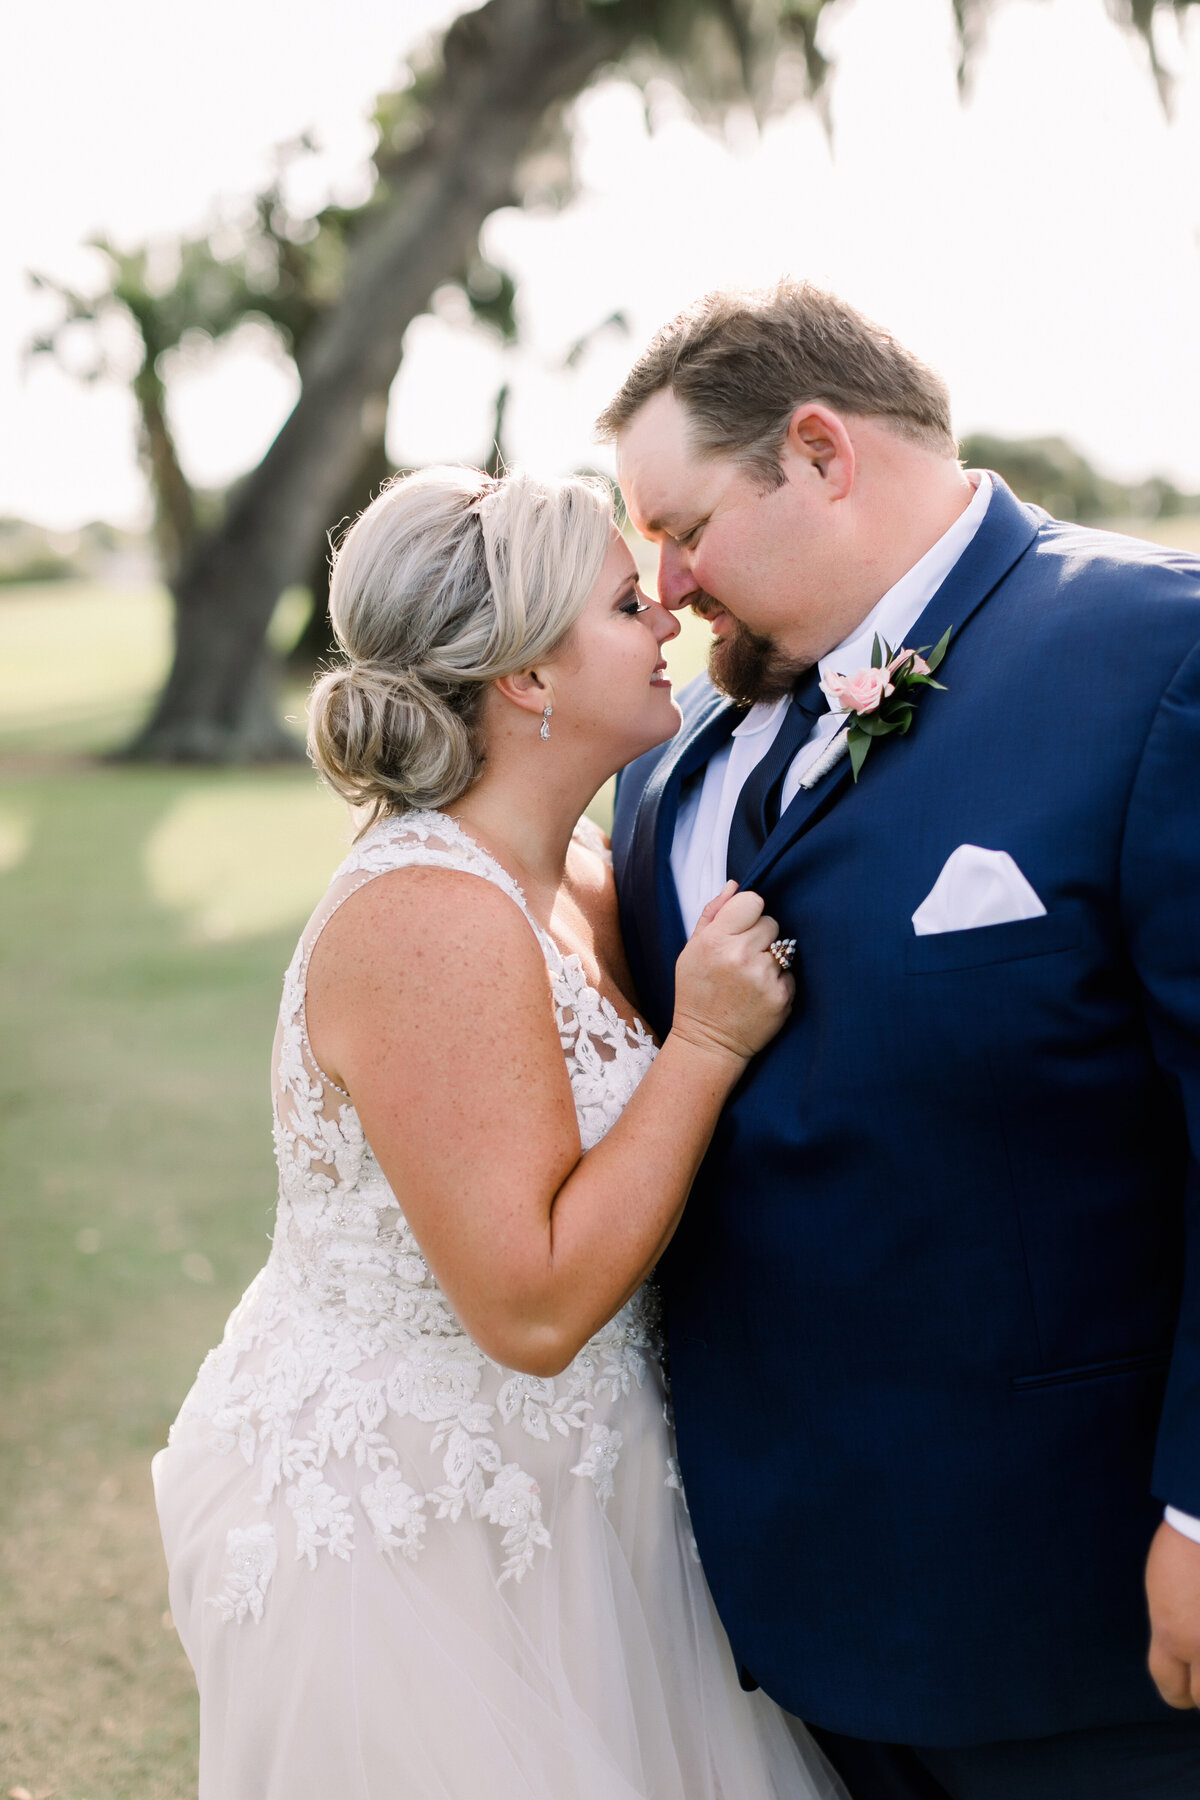 vero beach wedding kristy and brian - brandi watford photography 444